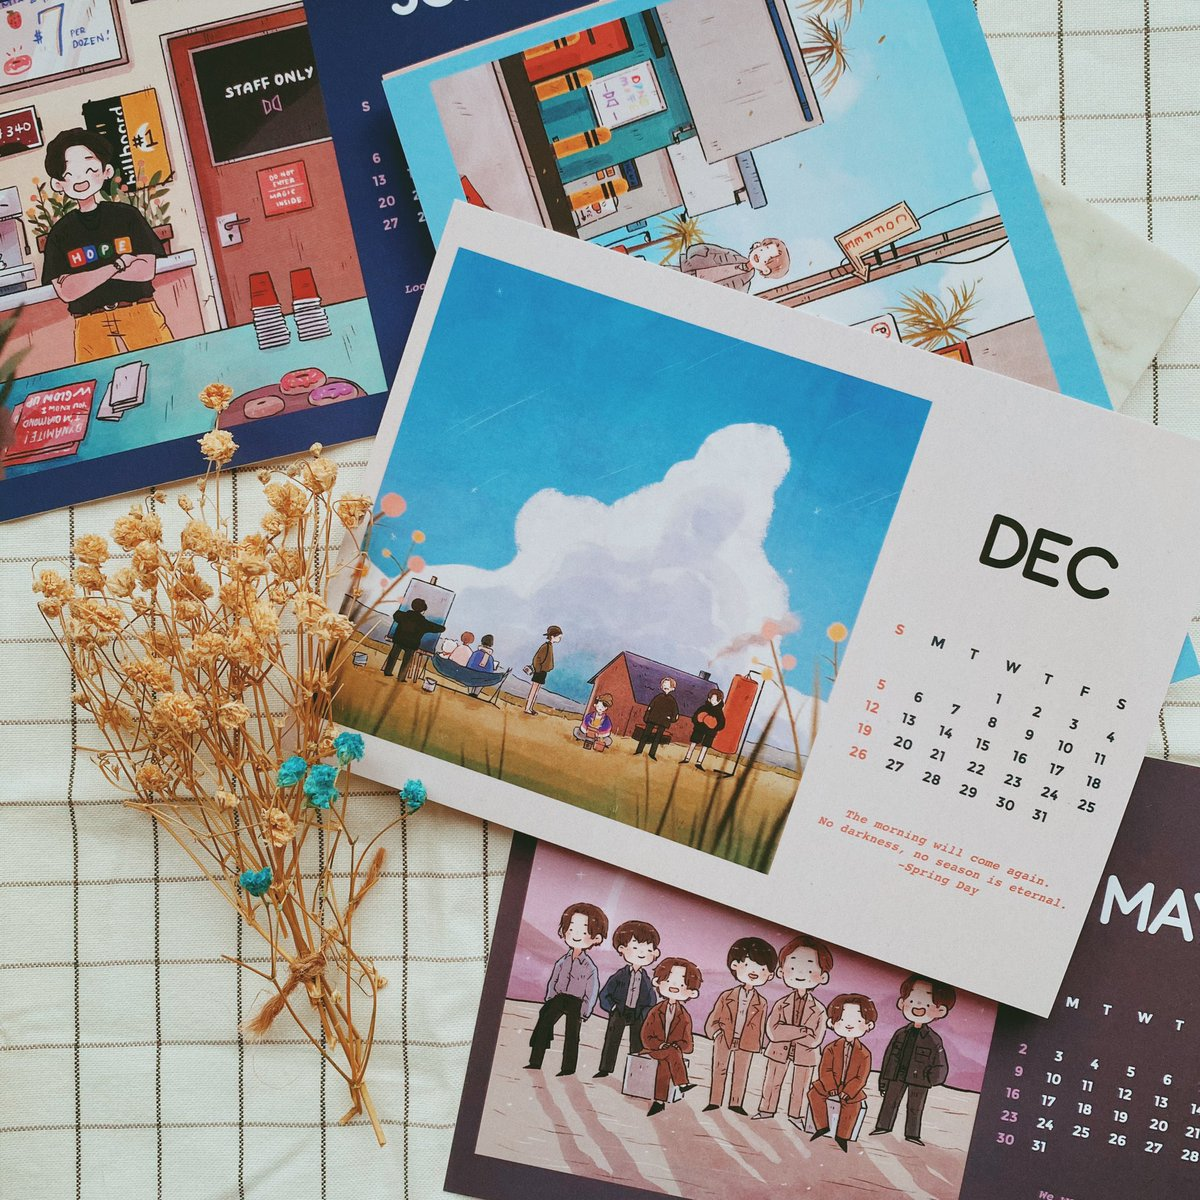 a little giveaway! 🌱 2021 Calendar: • 2 winners • Open to be mailed internationally • RT to enter (will be drawing two names with a retweet picker) • Ends 23:59GMT on Tuesday 27/01! ☀️ Looking for fic recs too so feel free to leave a link to a fic you enjoy! •◡•